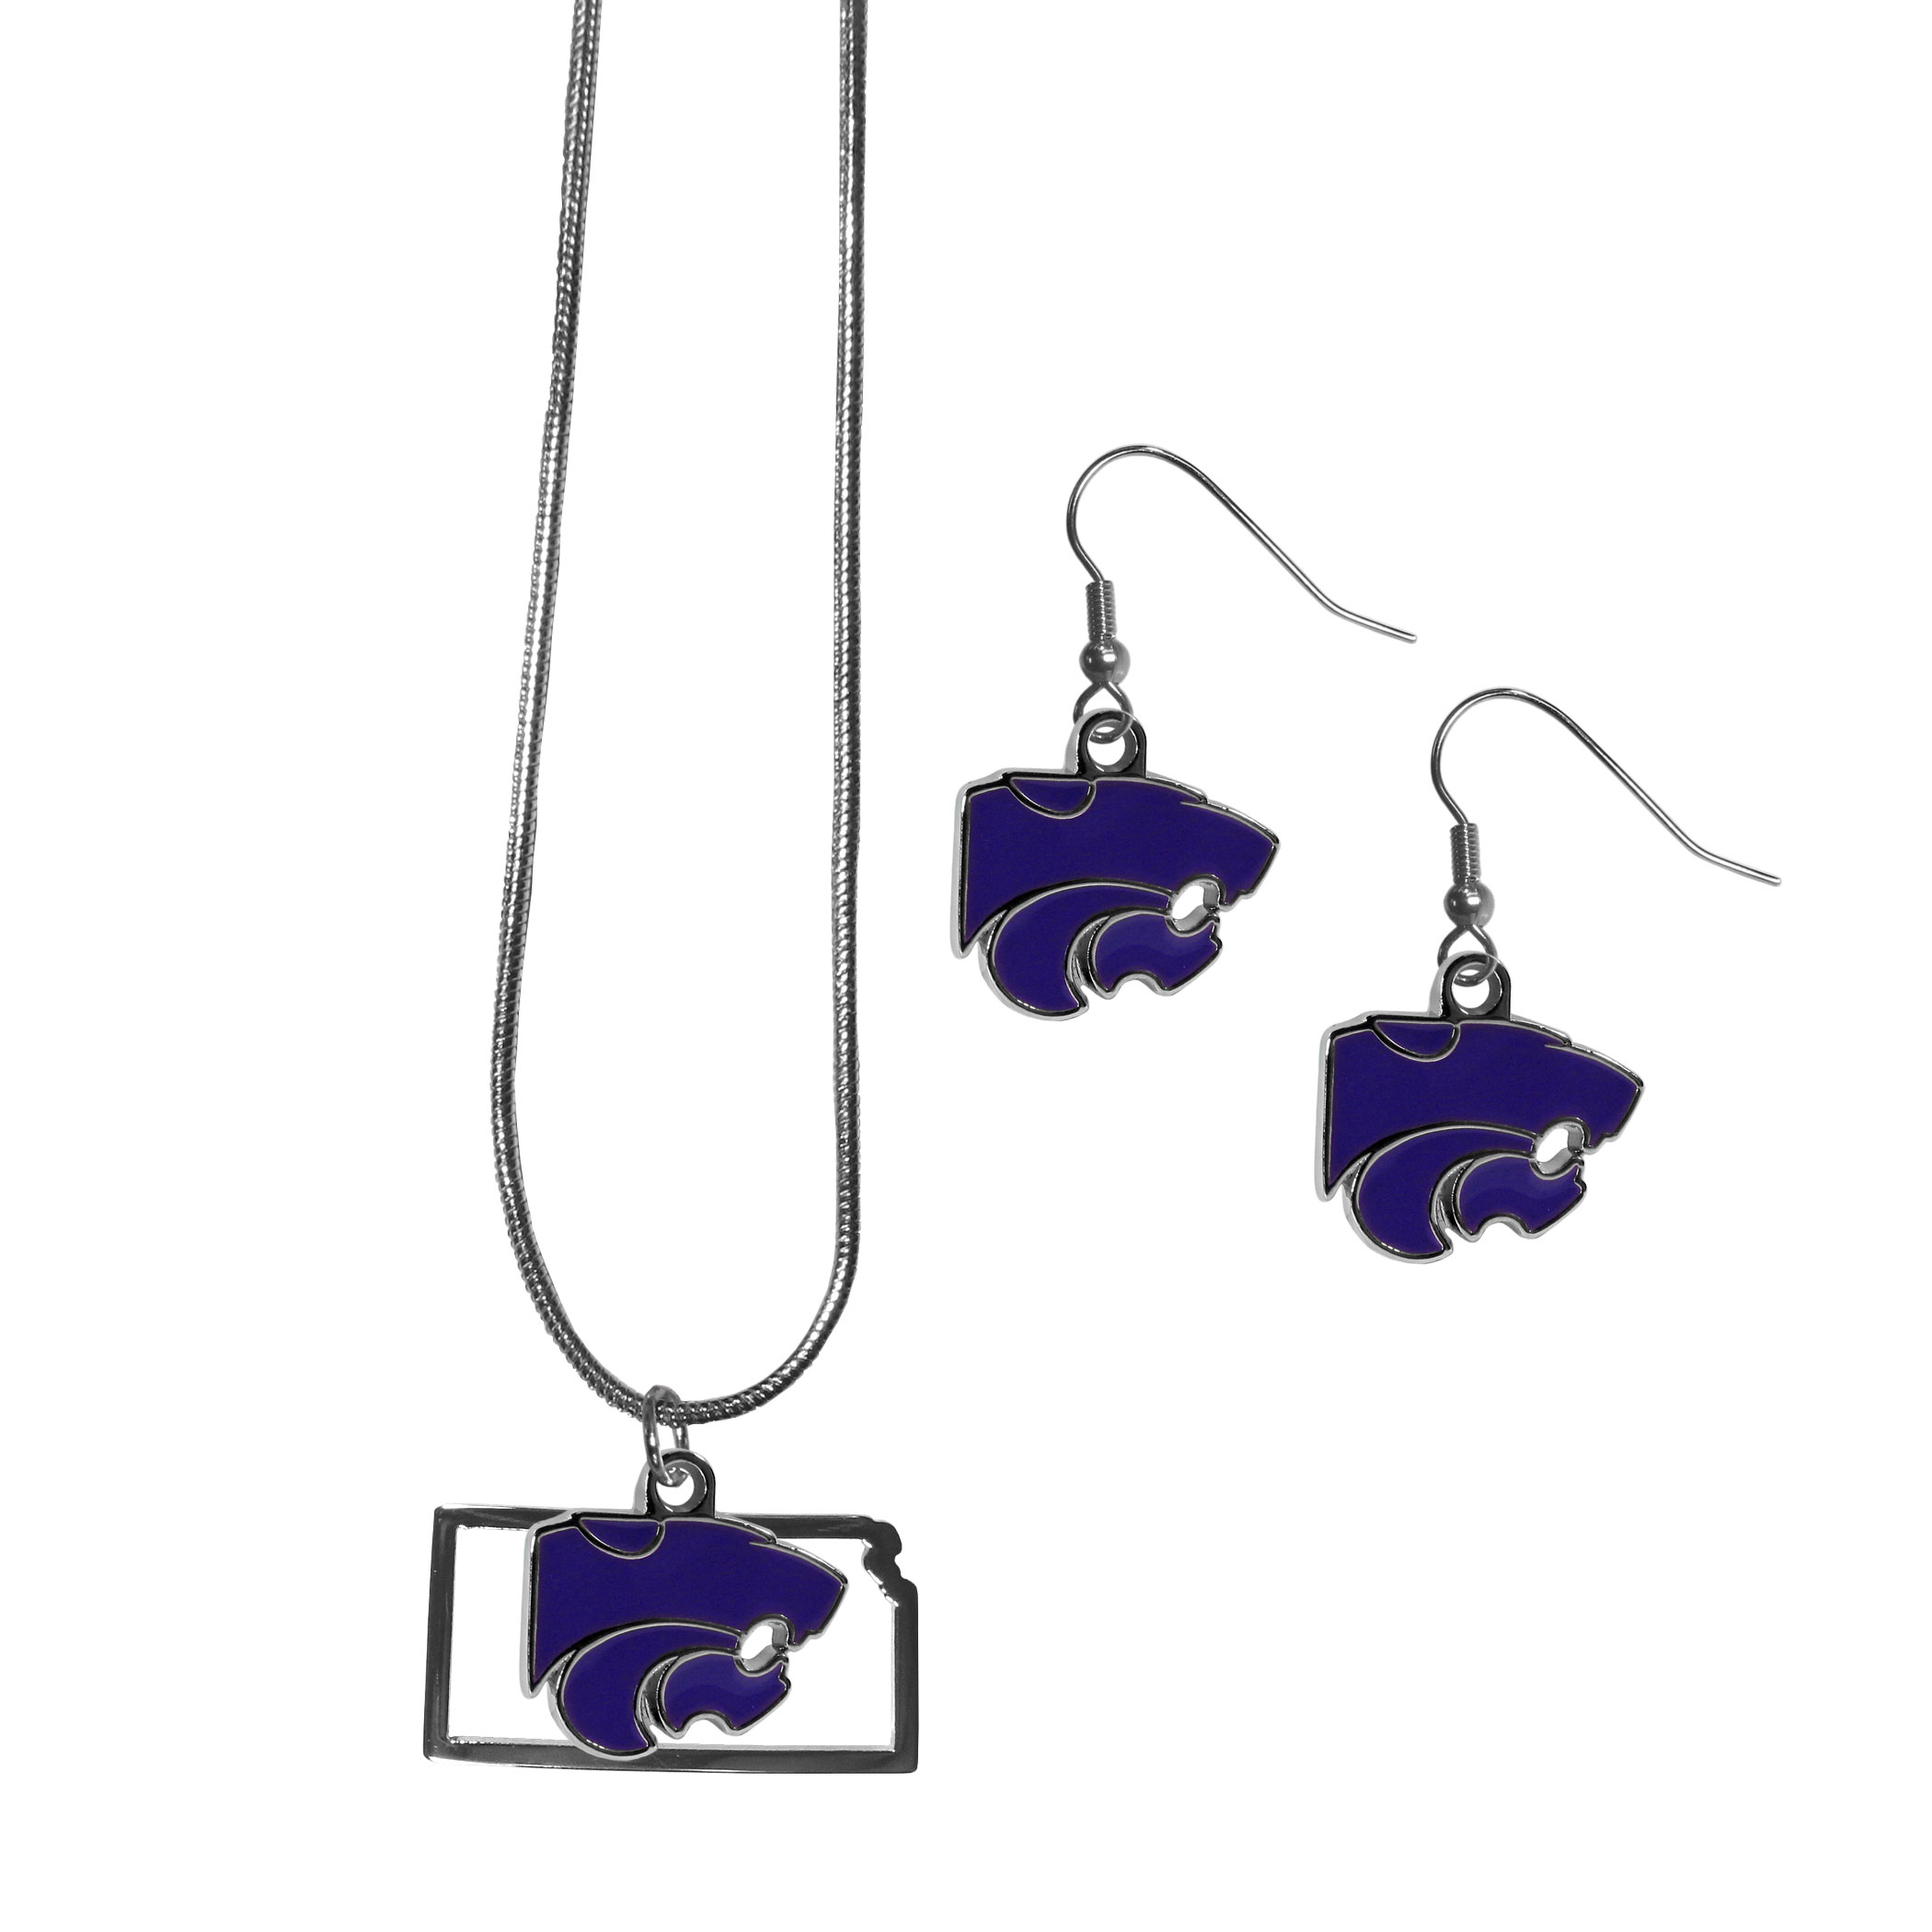 Kansas St. Wildcats Dangle Earrings and State Necklace Set - Get in on the trend! State themes are a trend that just keeps getting more popular and this jewelry set takes the state style and give it a sporty twist with a Kansas St. Wildcats necklace that features an Arizona state outline charm paired with a beautiful team charm and matching team charm dangle earrings. The earrings feature hypoallergenic fishhook posts that are nickel free.